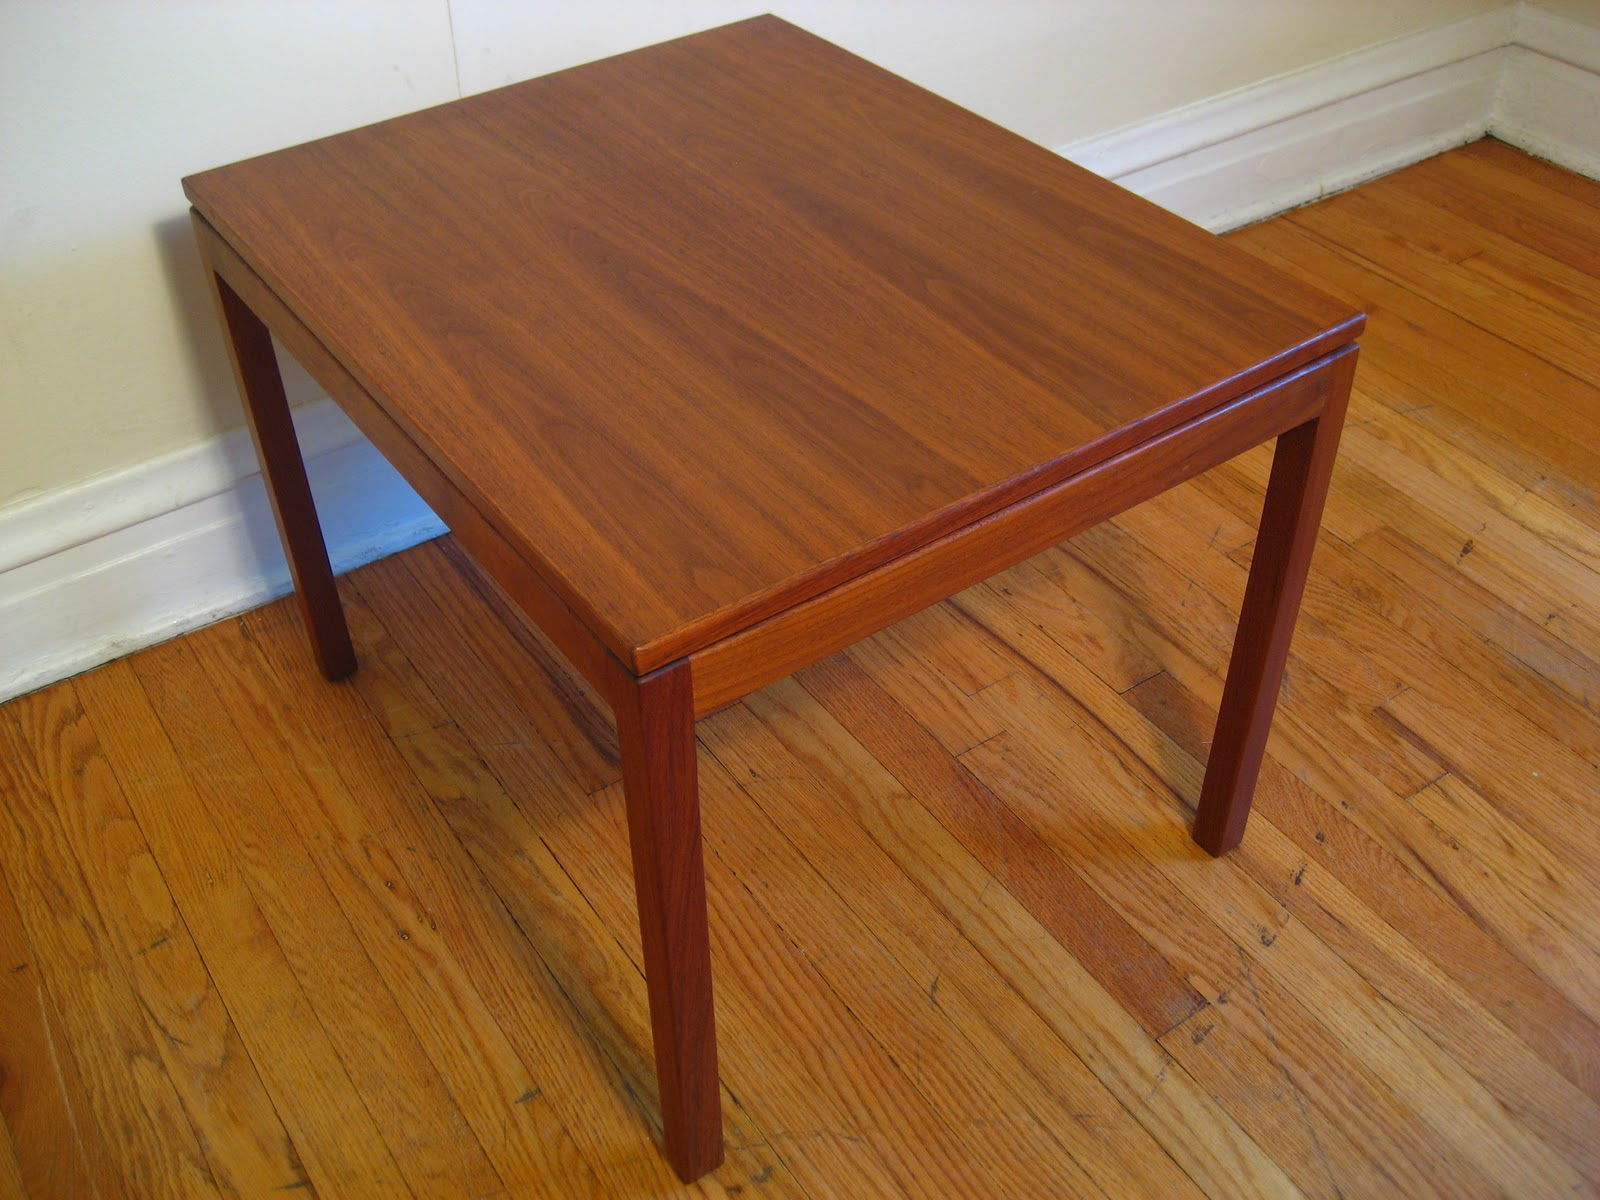 Flatout design jens risom occasional table jens risom design solid walnut occasional table signed with decal manufacturers label to underside excellent condition no issues geotapseo Choice Image